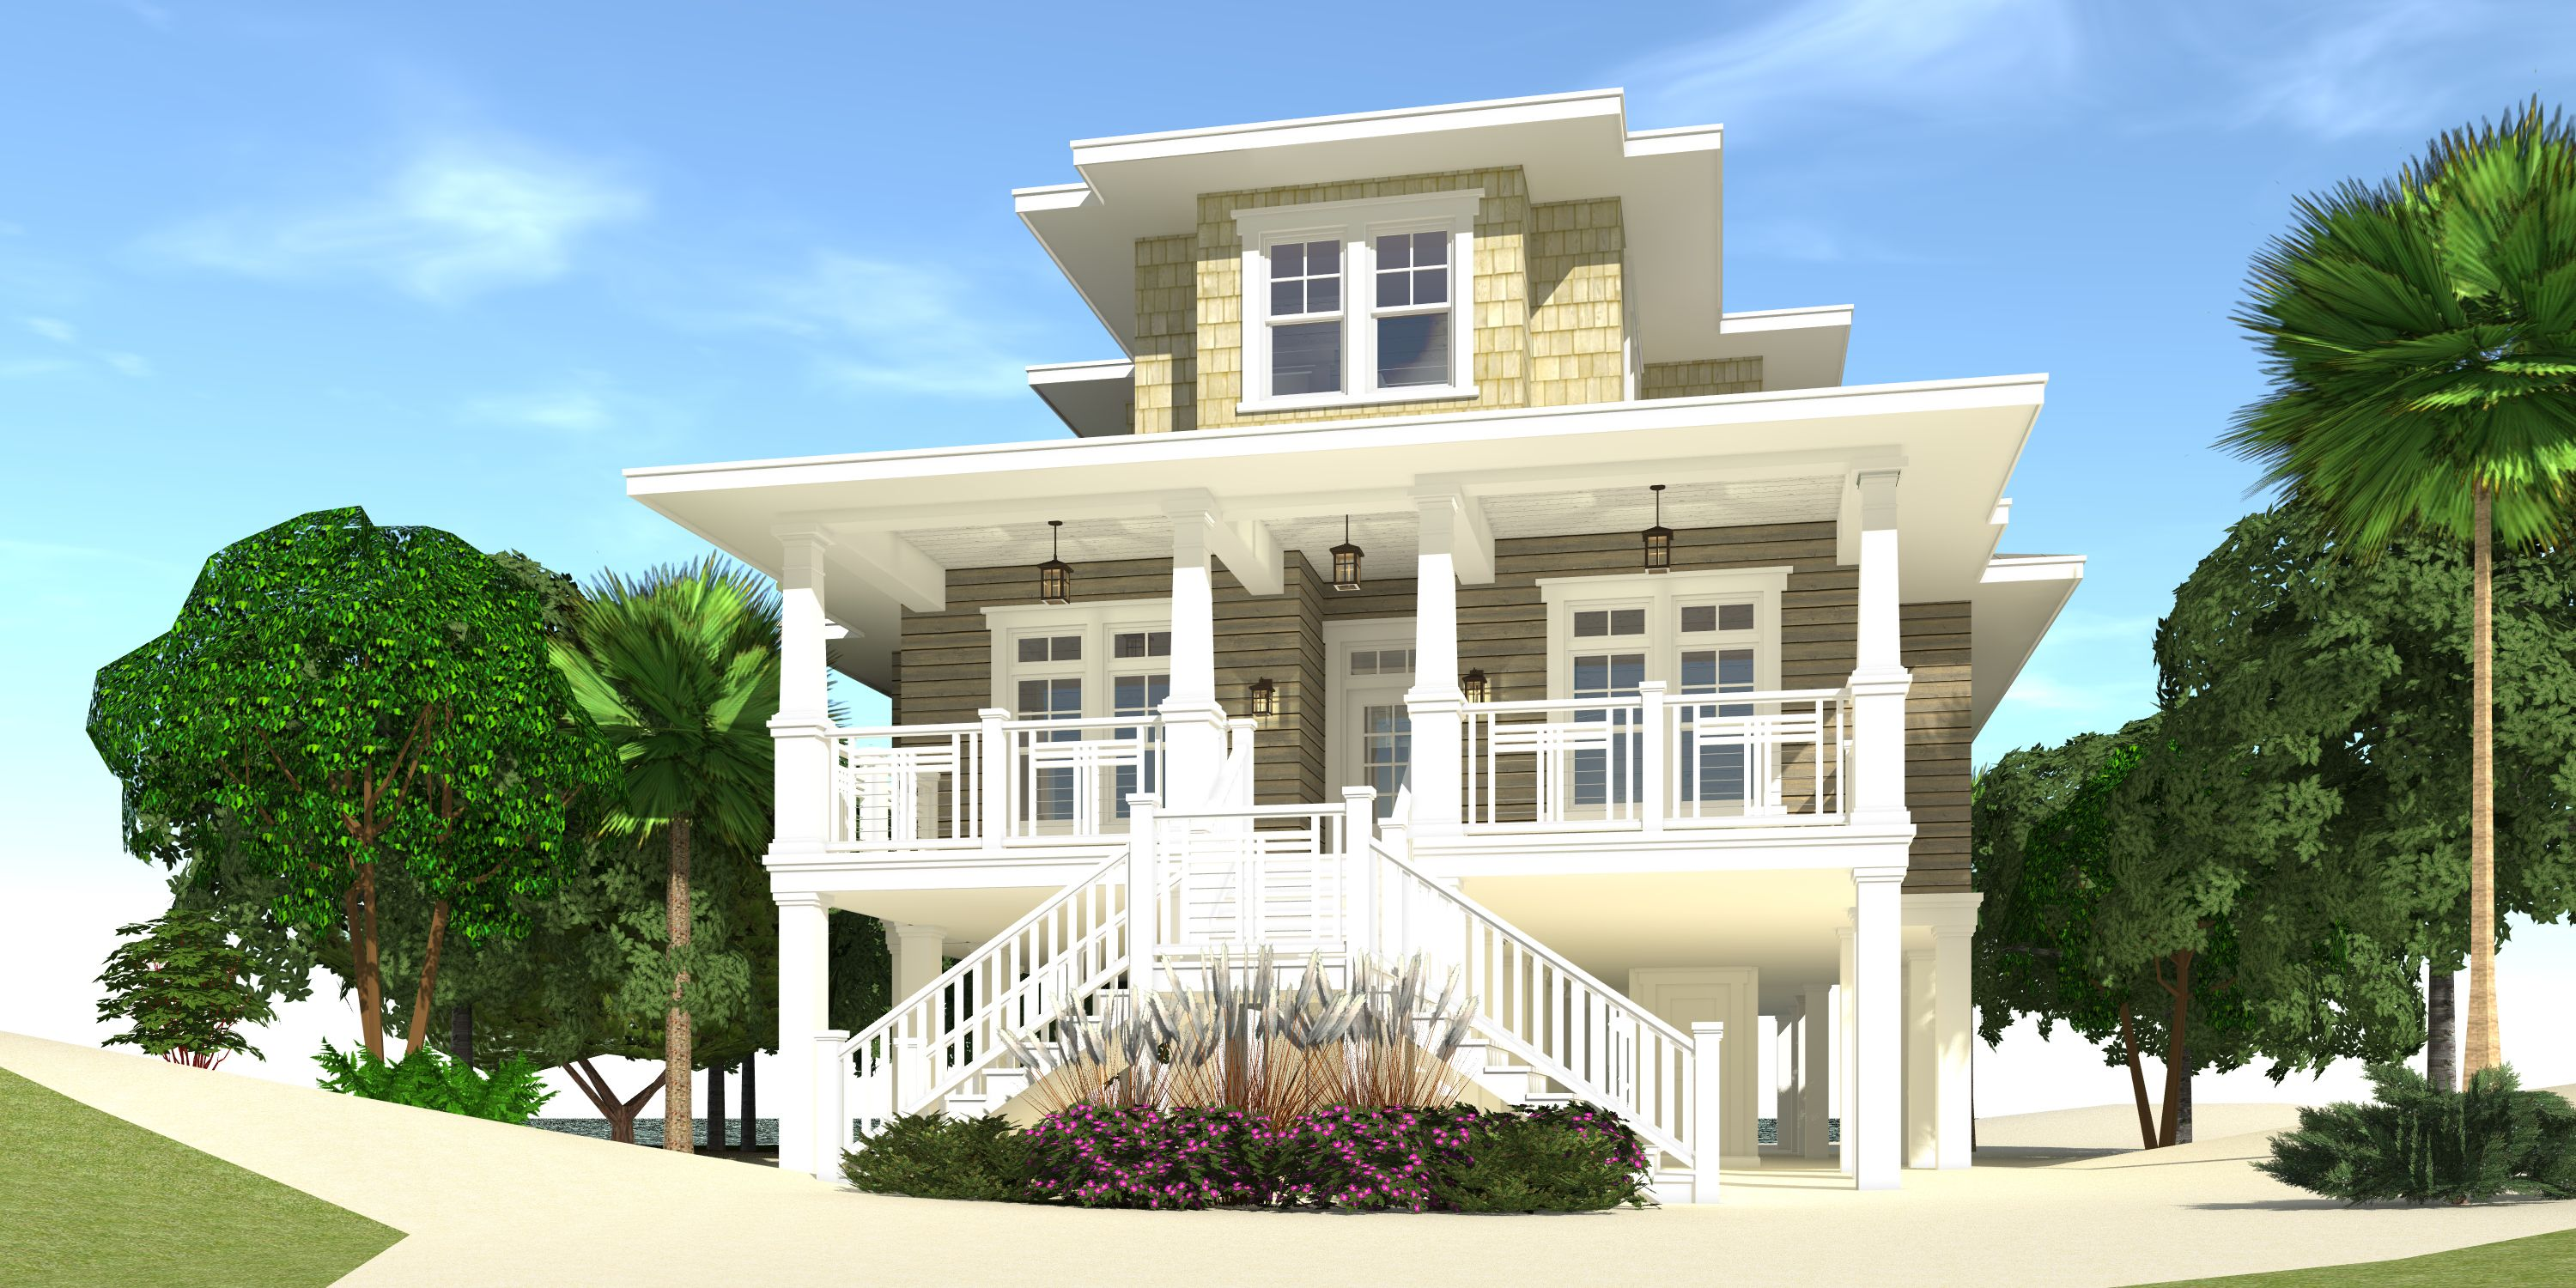 4 Bedroom Beach House Plan with Porches Tyree House Plans